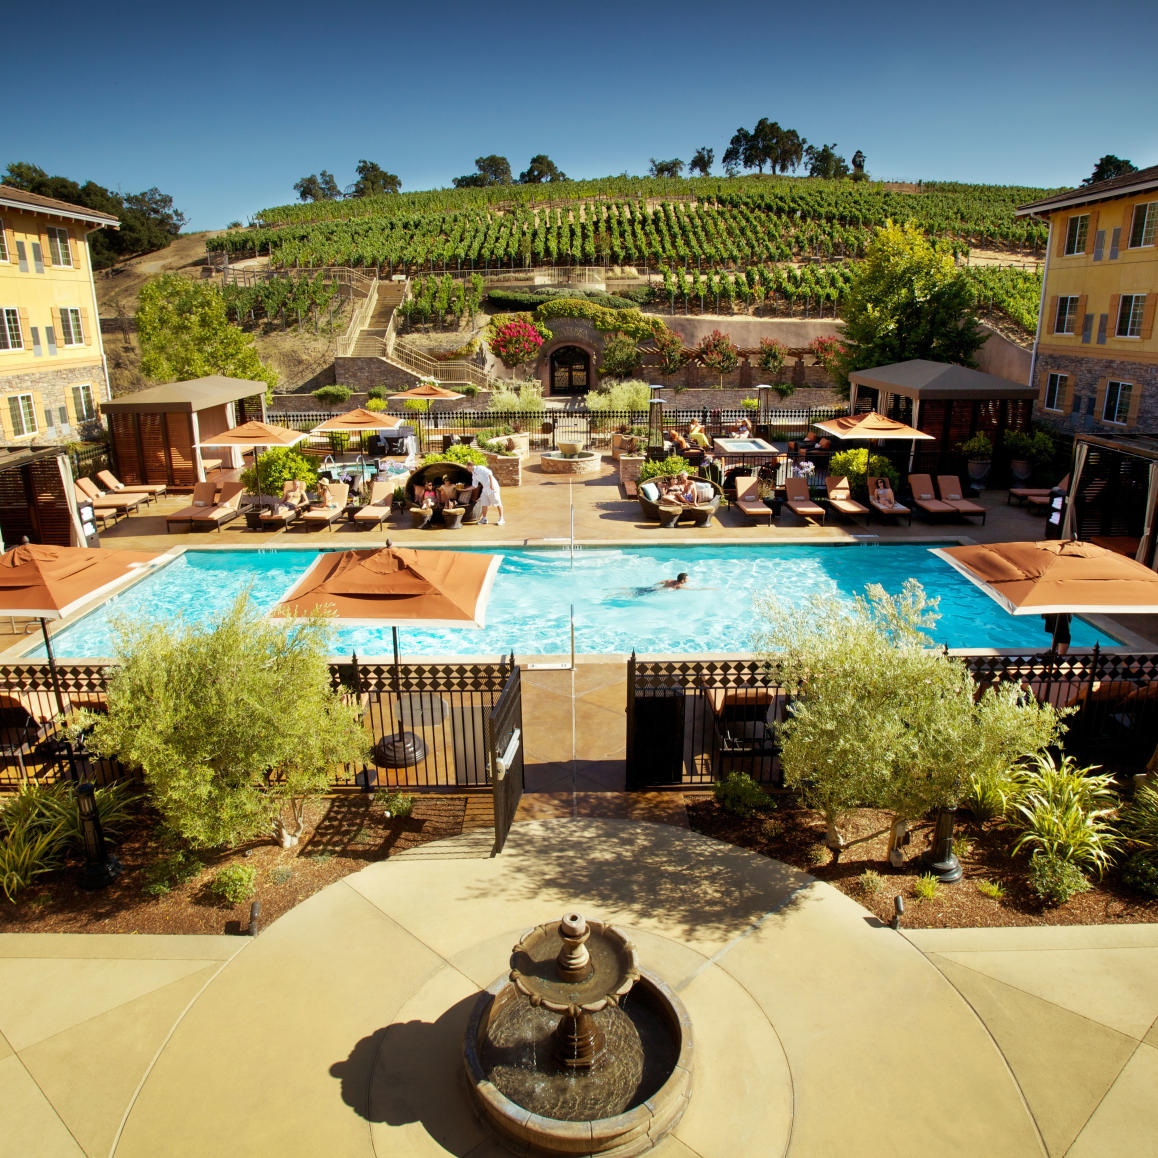 The City Of Napa Sits At Southern End Valley Once A Jumping Off Point For Wine Country Excursions Has Undergone Renaissance